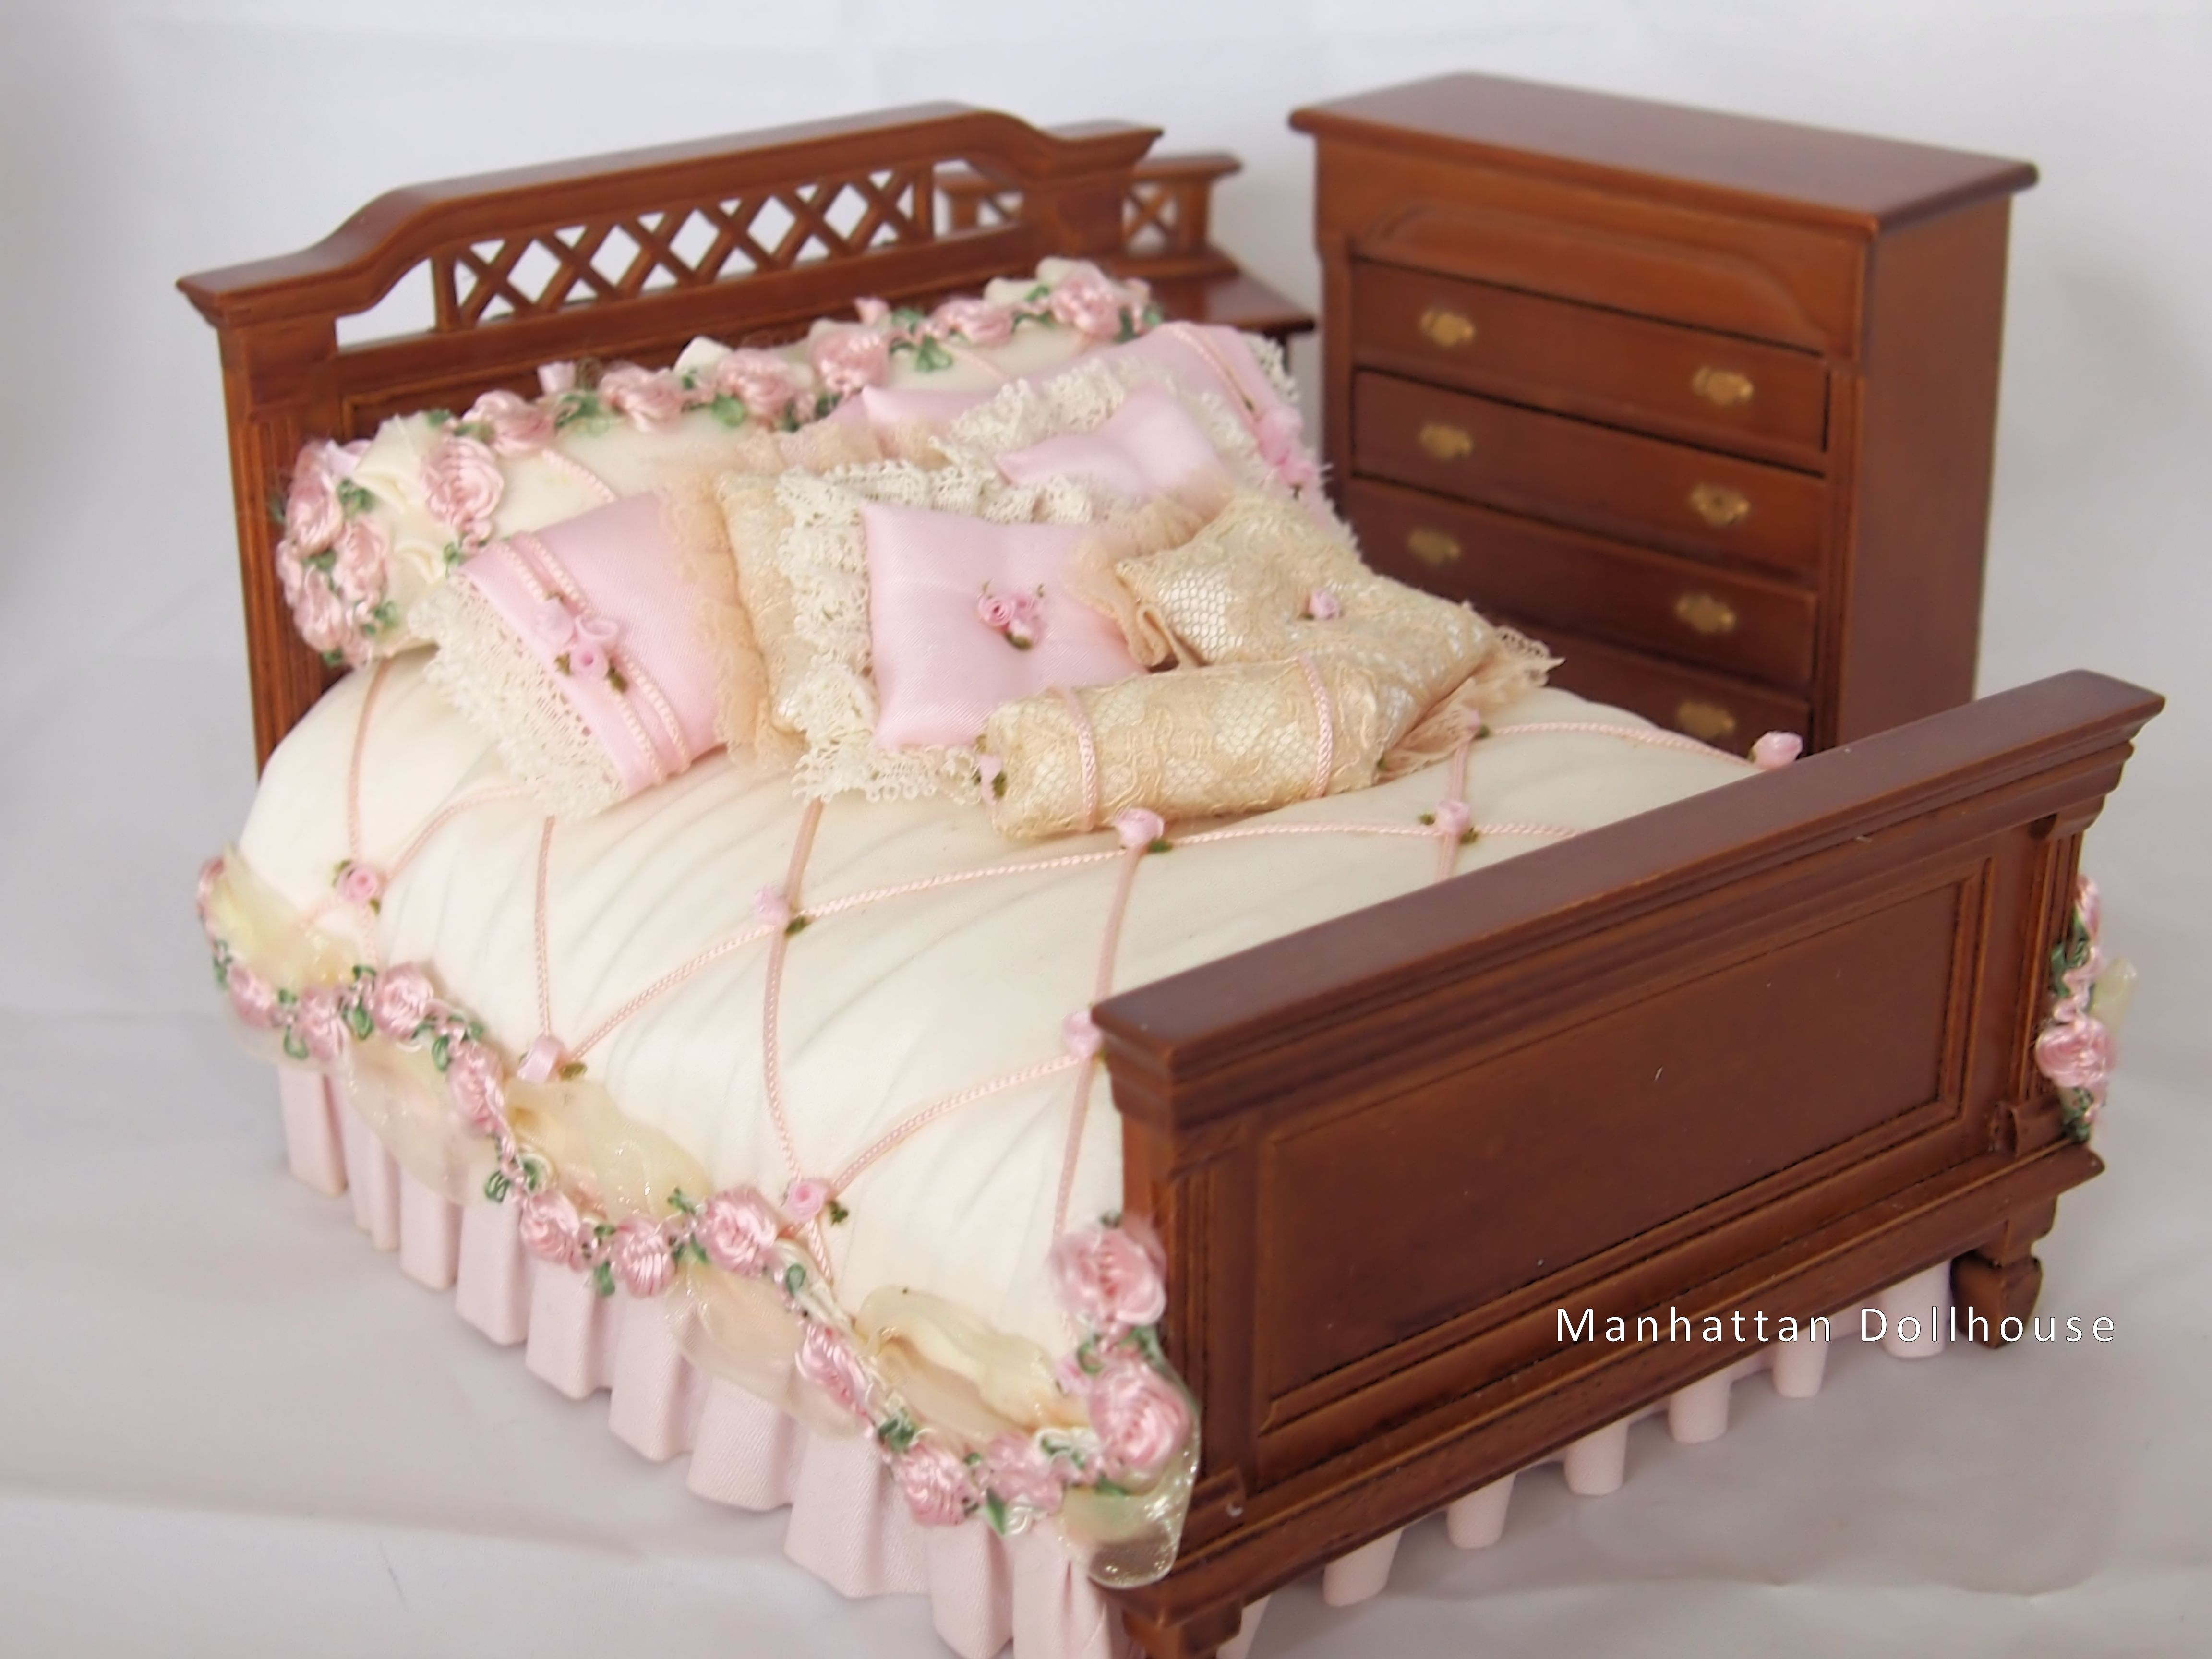 Dollhouse miniature bedroom furniture set bedroom review Miniature room boxes interior design